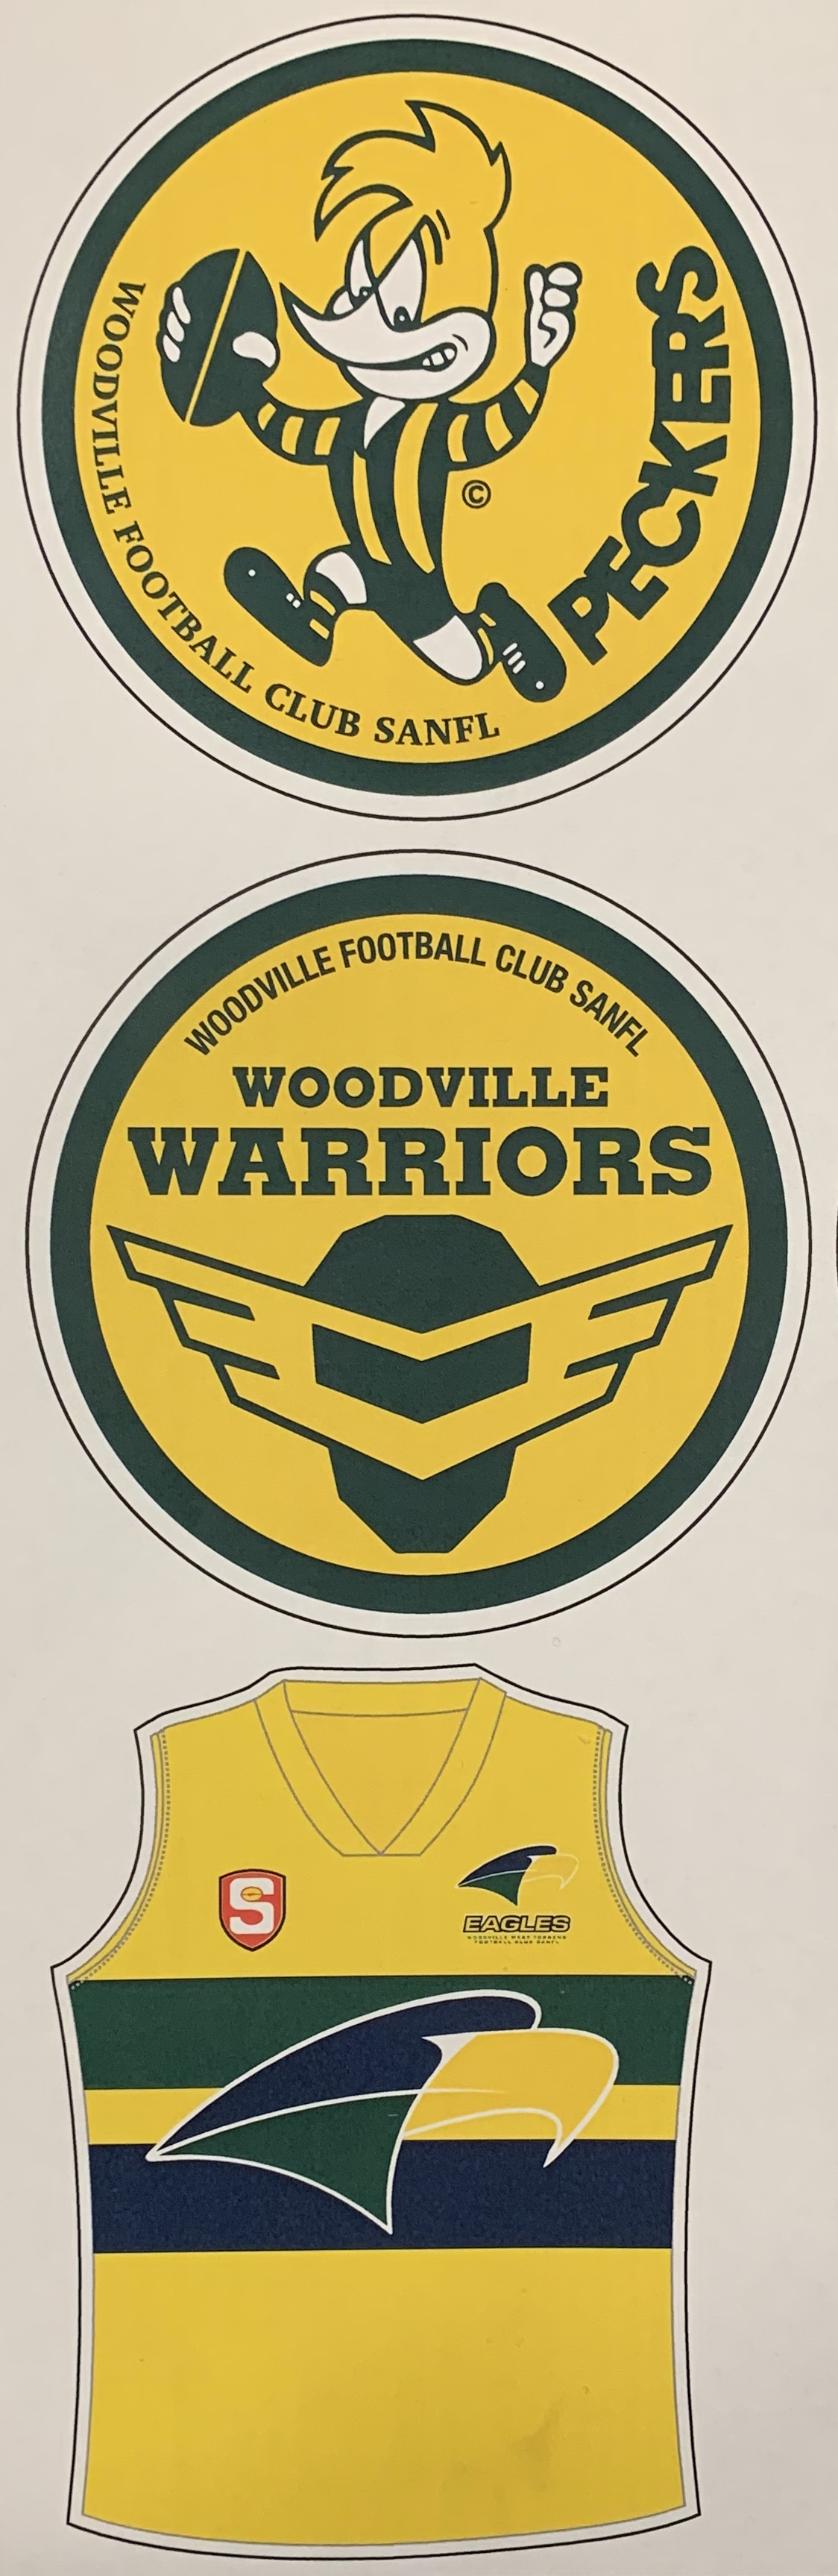 Woodville Retro sticker set